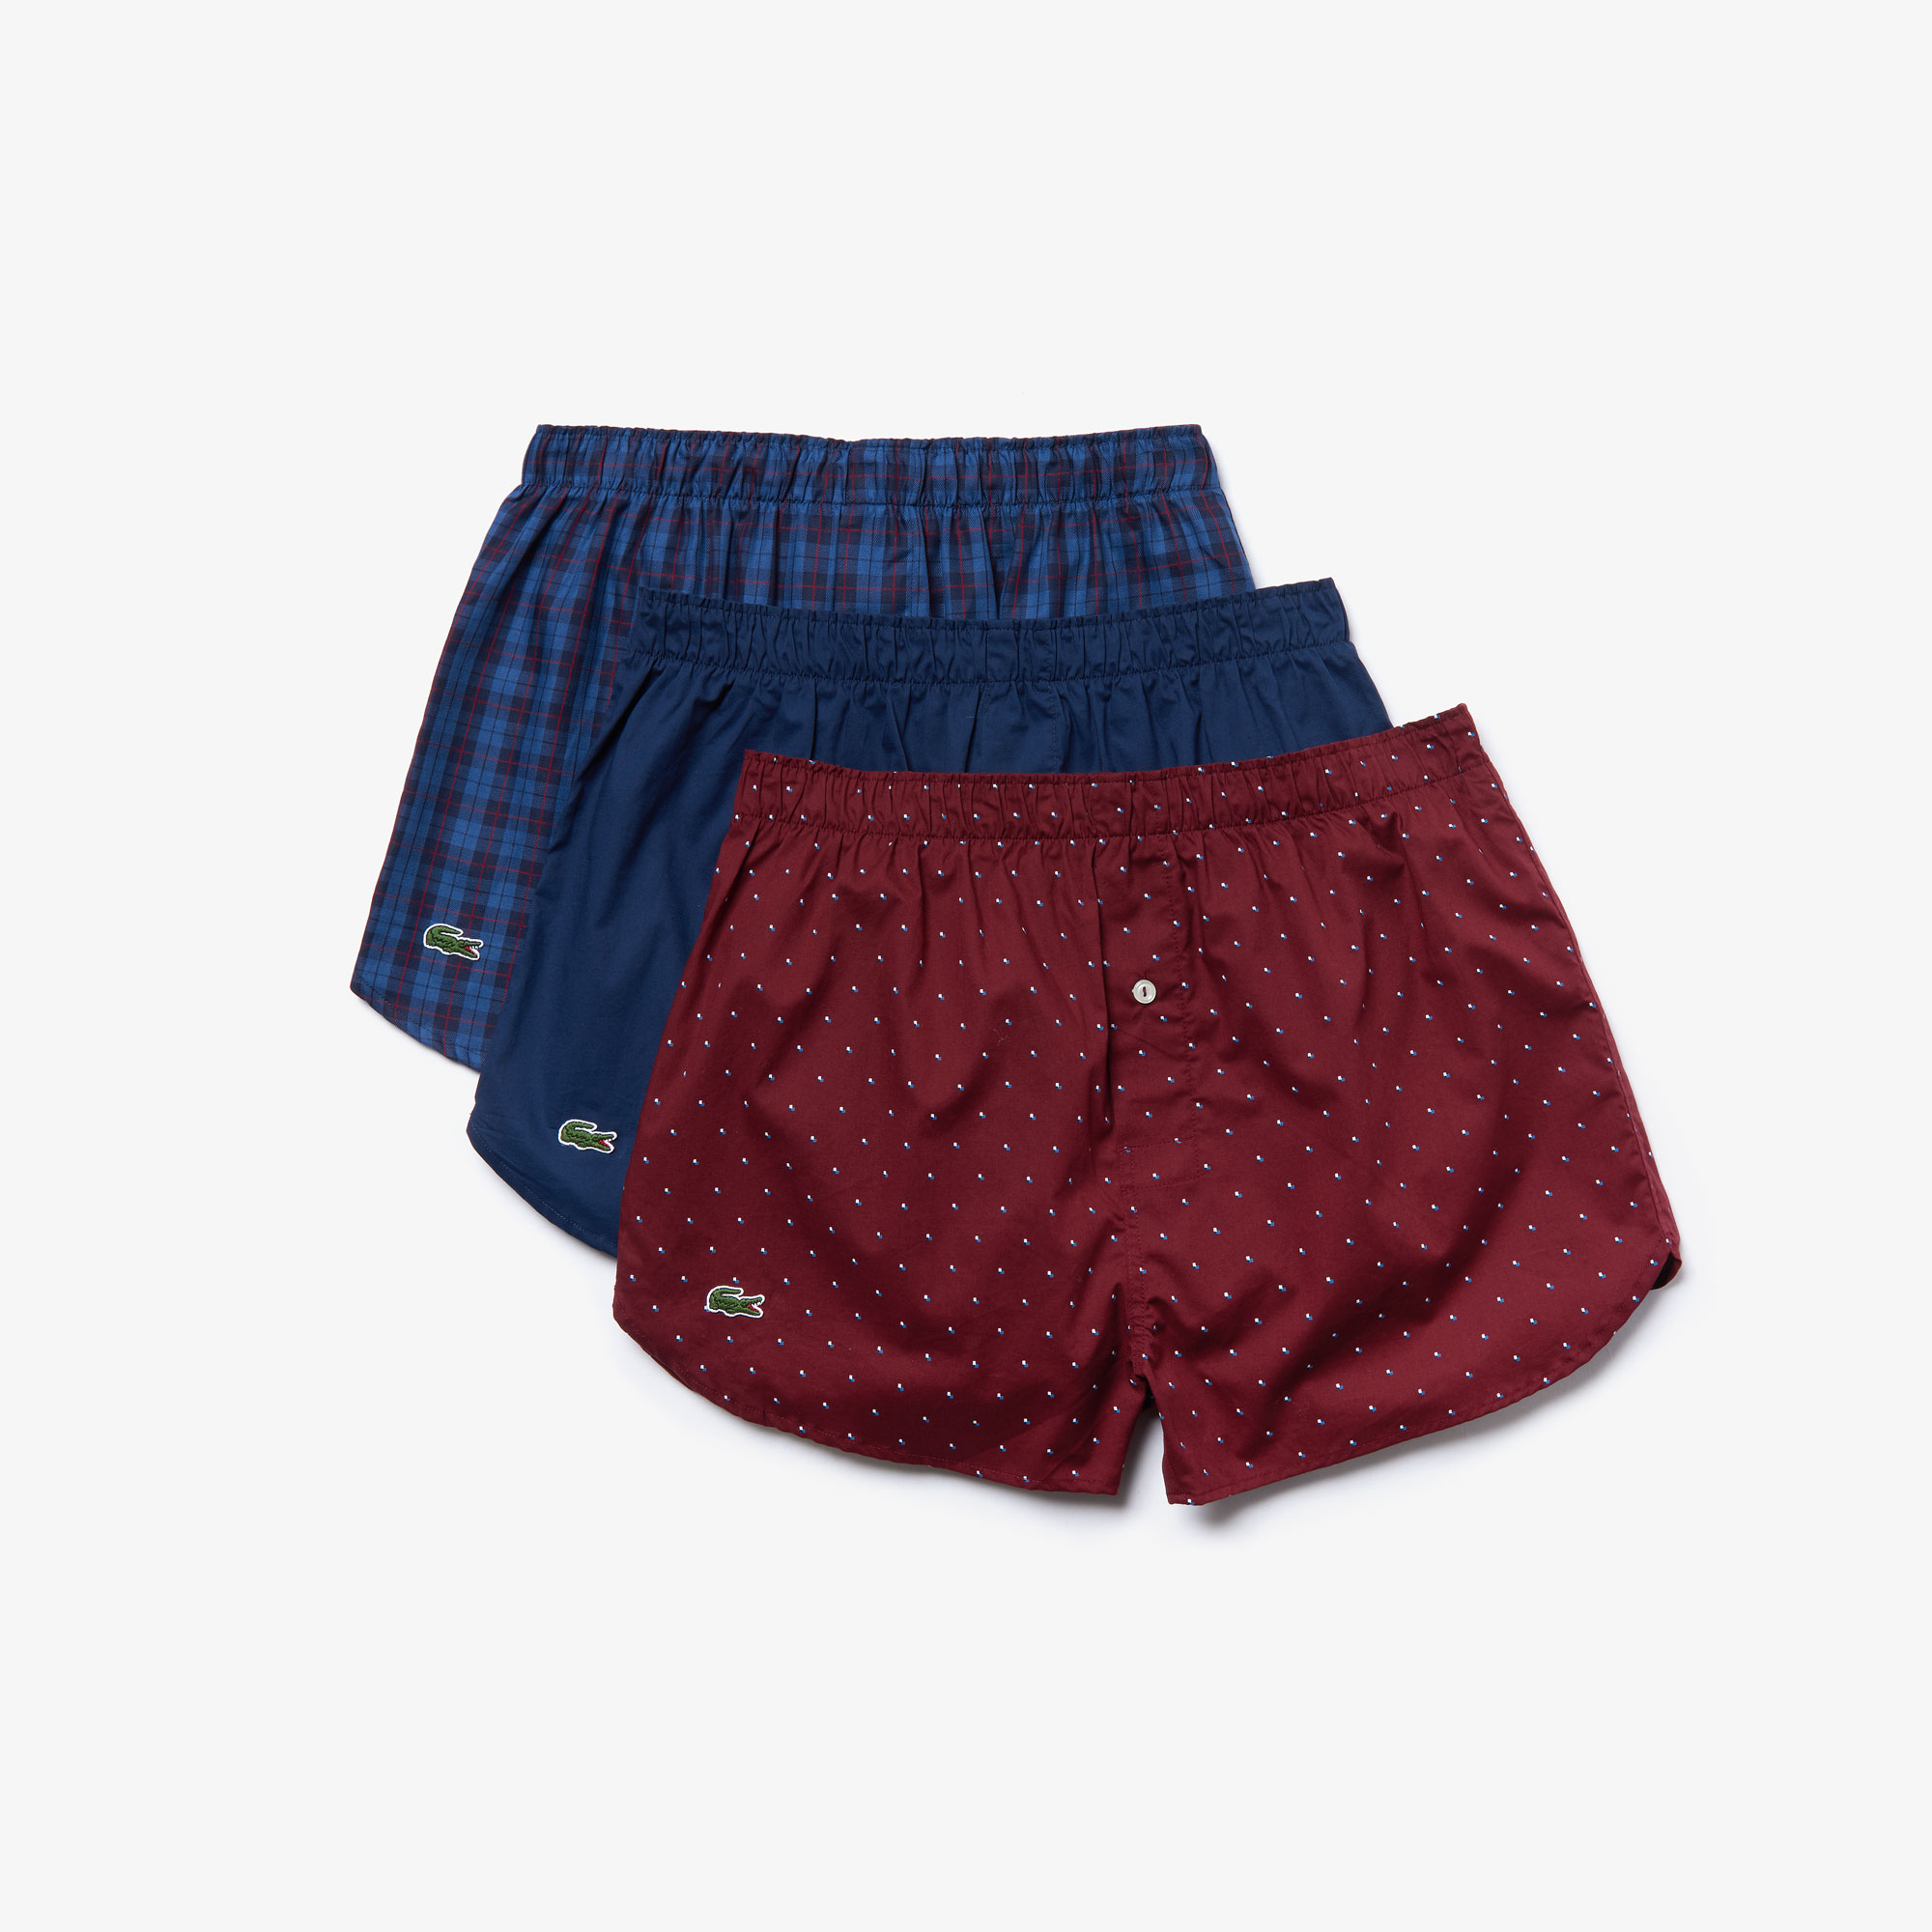 Pack of 3 Authentics fabric boxers